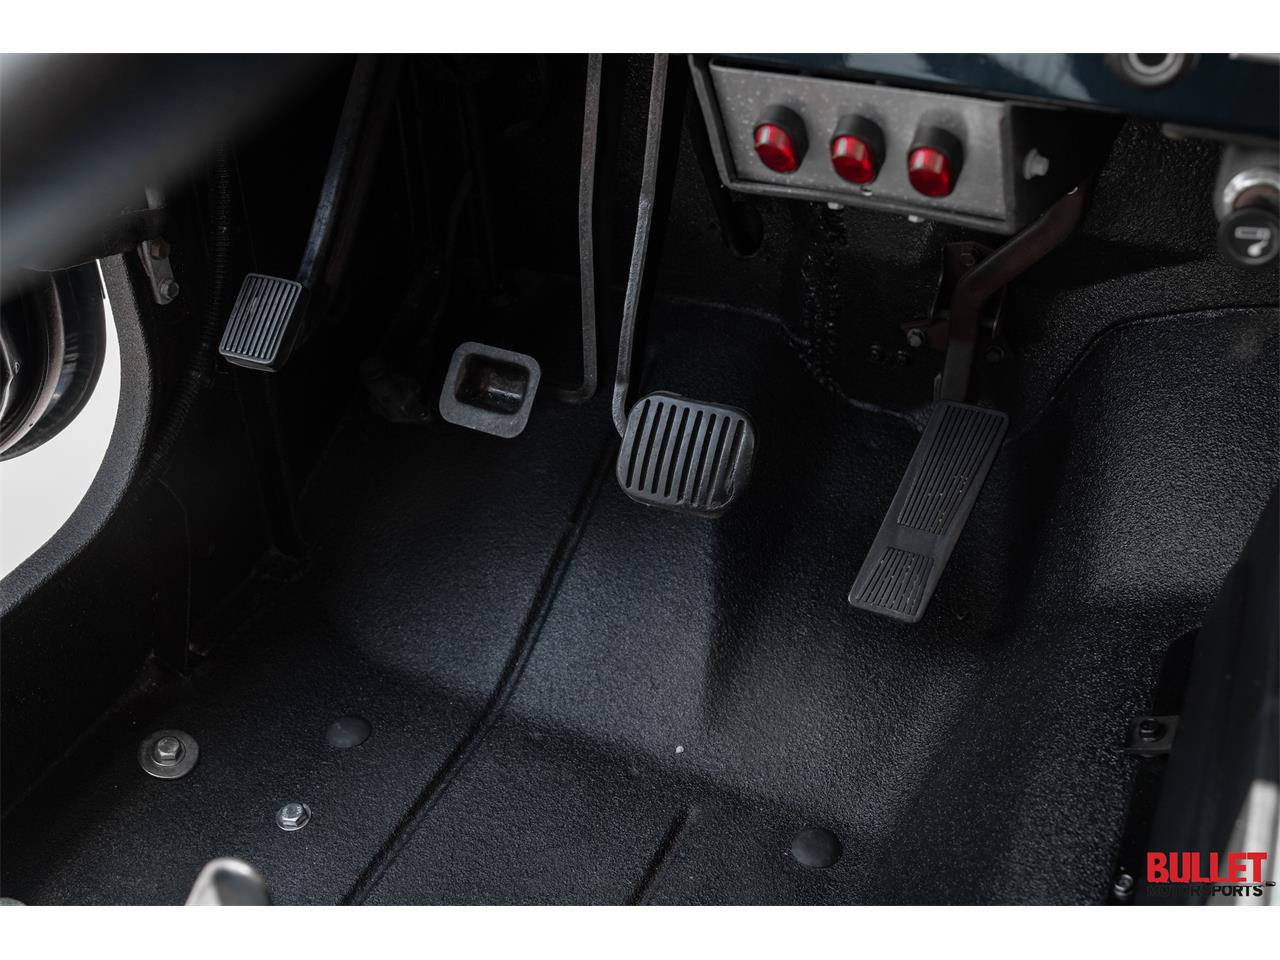 Large Picture of 1983 CJ7 located in Fort Lauderdale Florida - $17,000.00 - PSWH